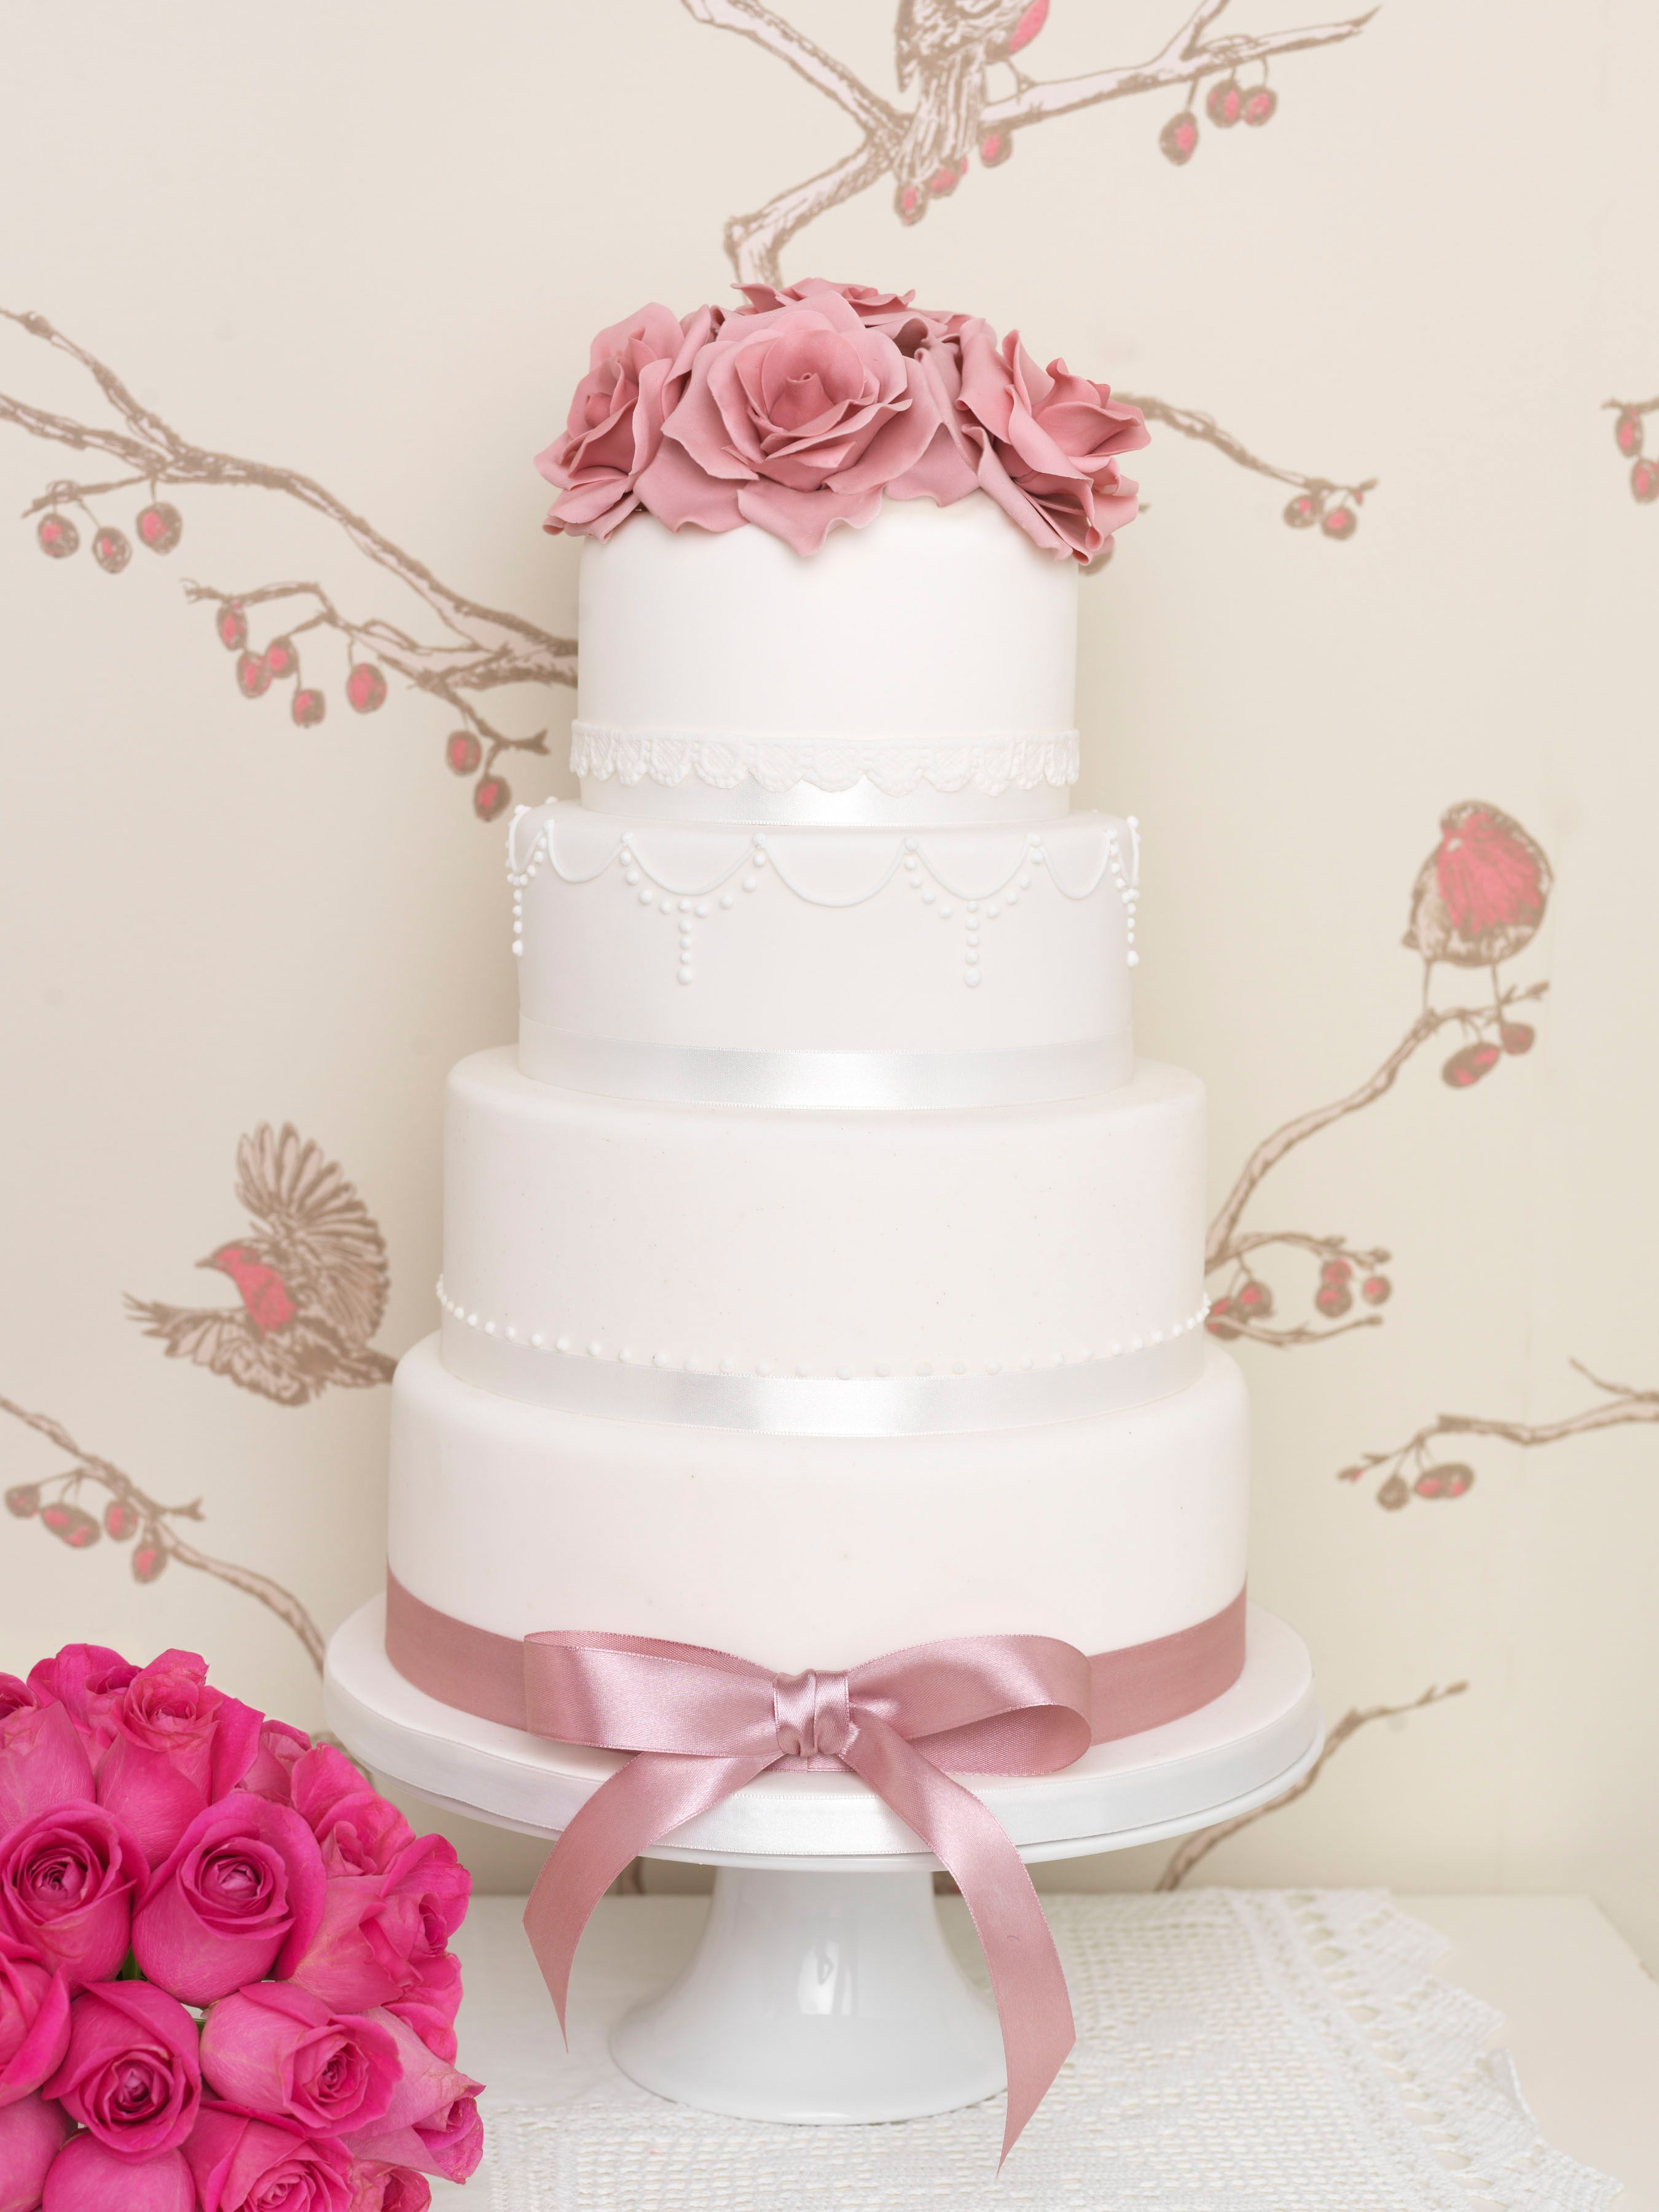 Eden Cake Company Wedding Cakes - Sugar Dusky Pink Roses, Sugar Lace ...